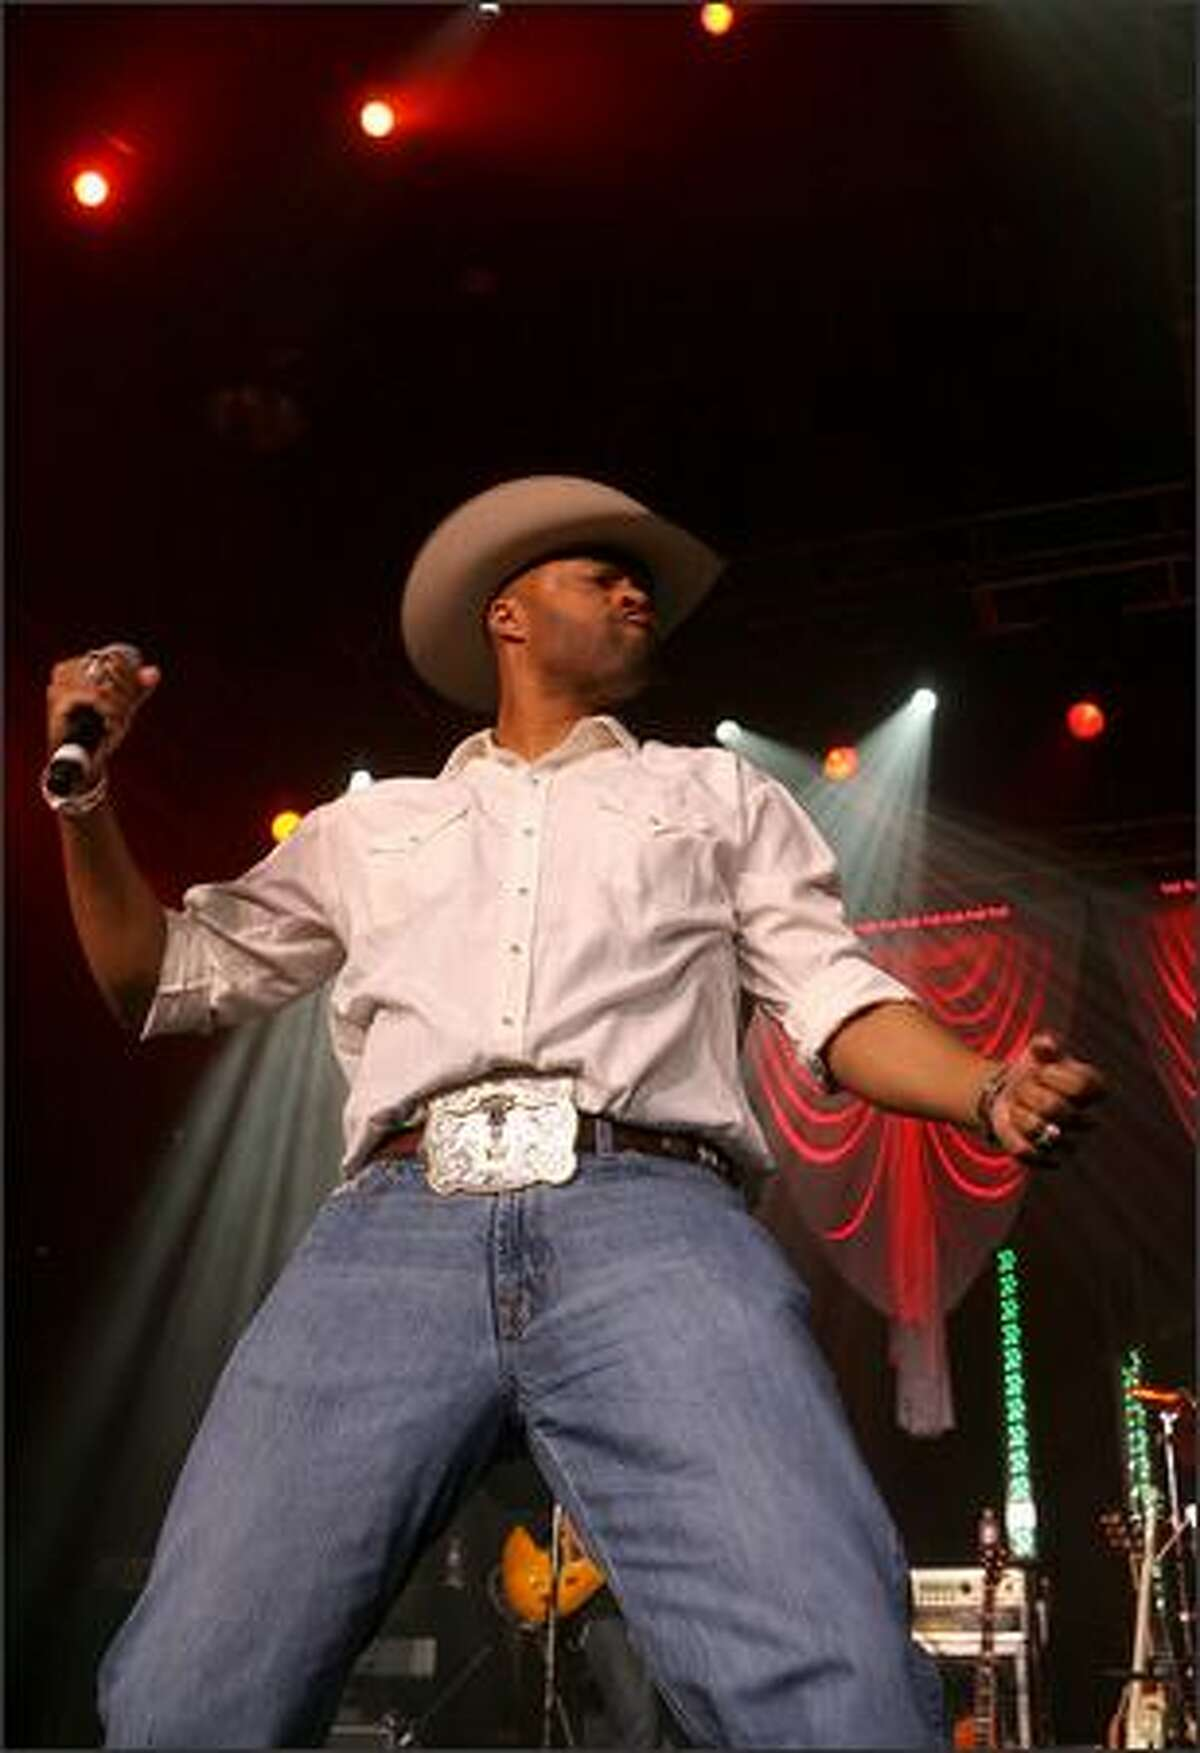 Cowboy Troy performs during the 43rd annual Academy Of Country Music Awards All-Star Jam.